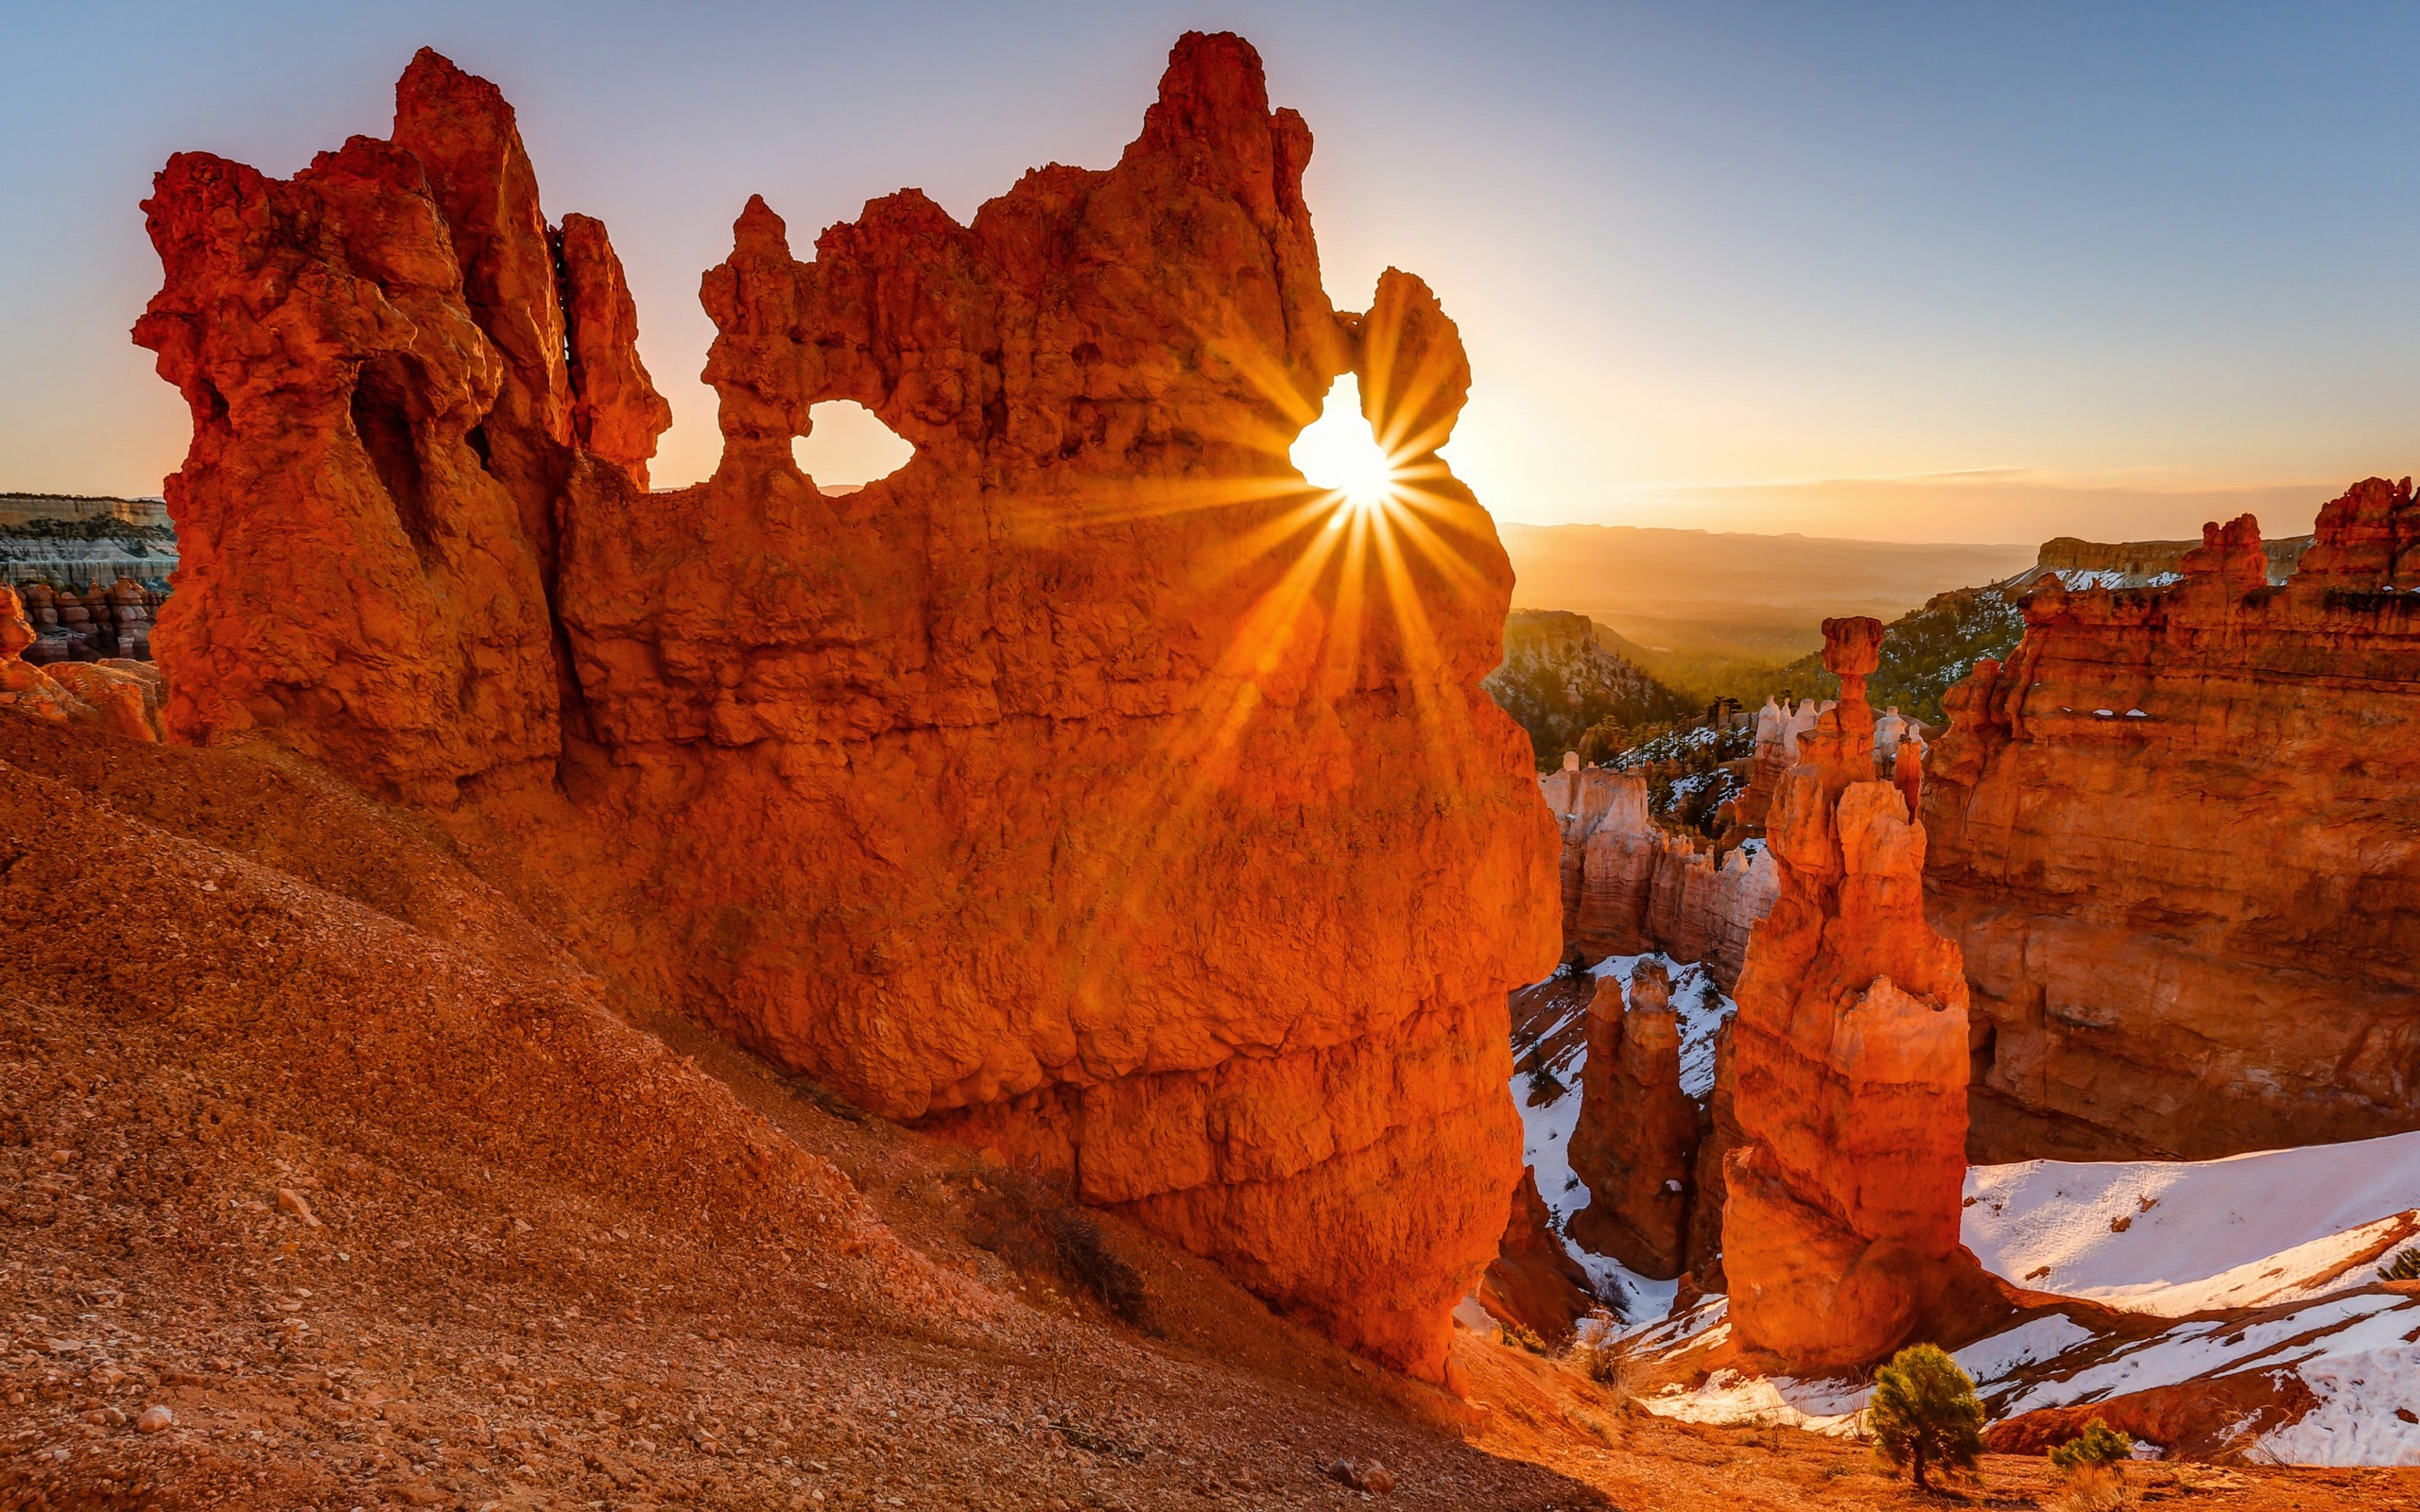 Fall Wallpaper For Android Tablet Nice Sunset Rays Red Rock Mountains Bryce Canyon National